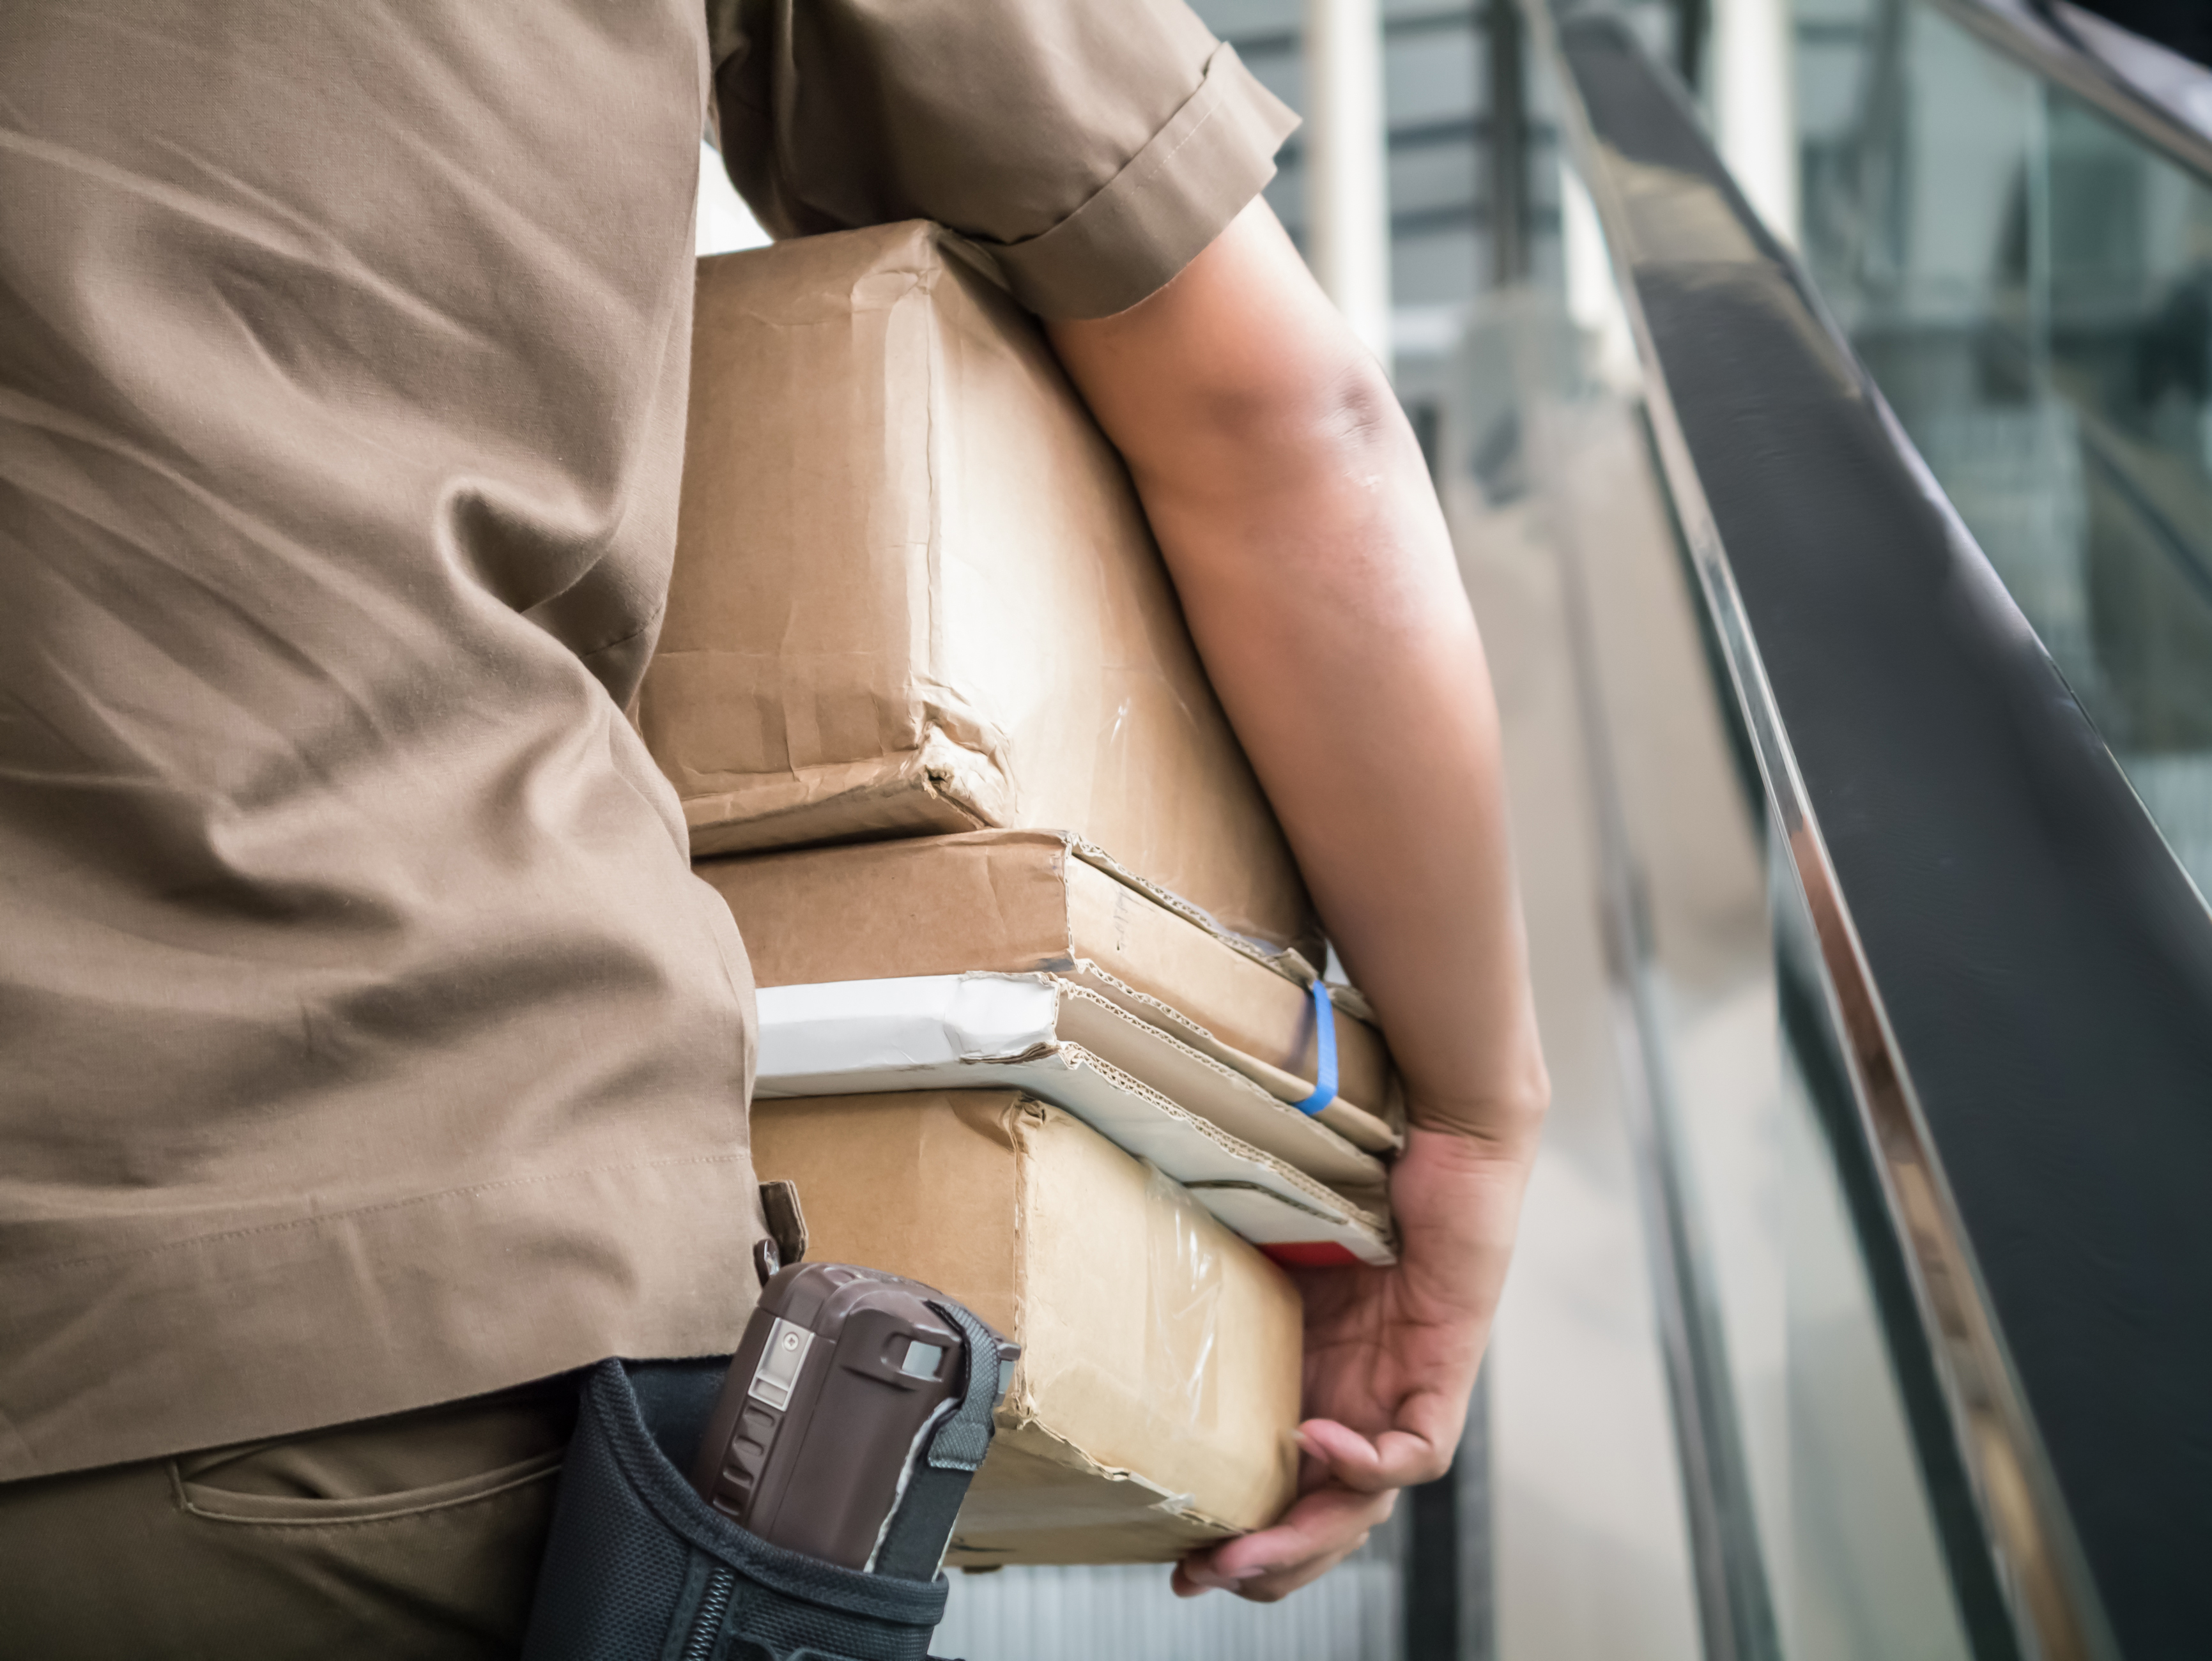 UK export mail and parcels market worth £2.9 billion according to the latest UK International Mail and Parcels Digest